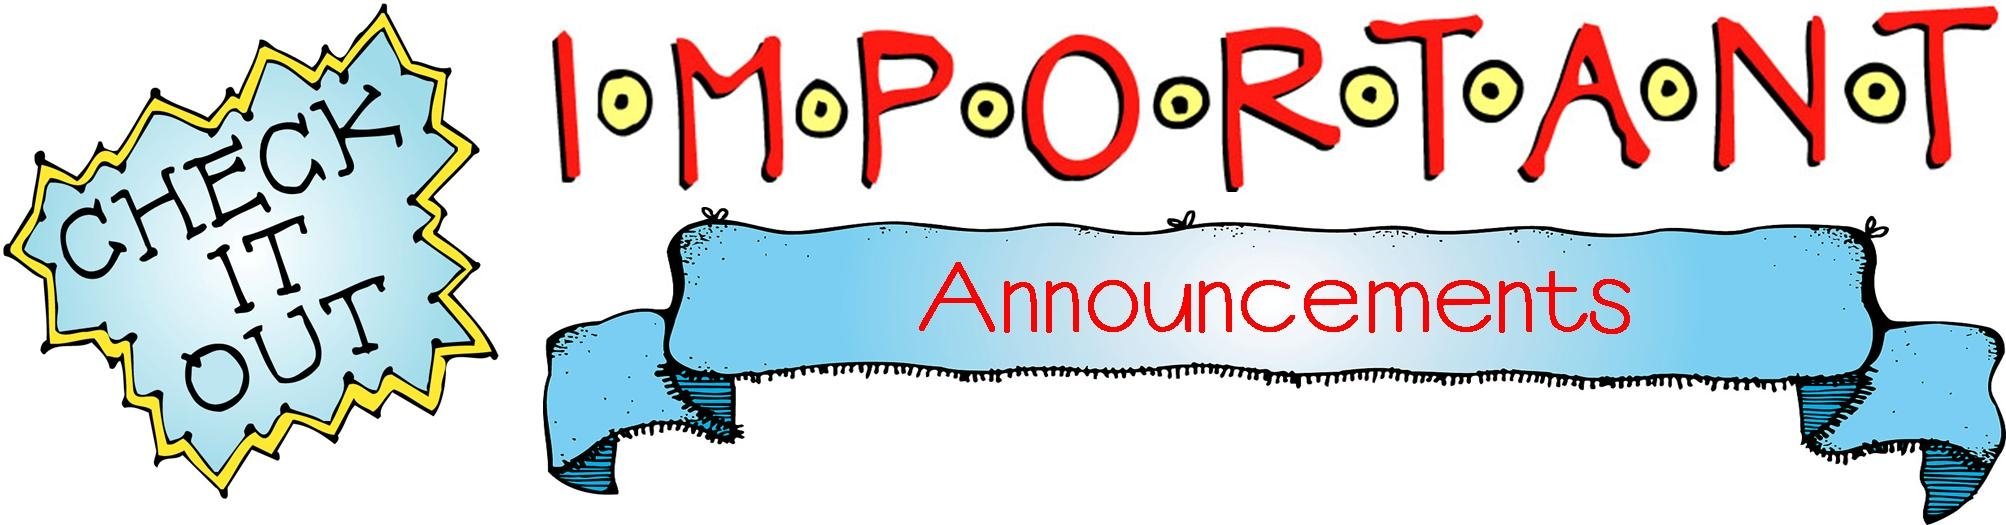 image free library Announcements clipart anouncement. Best of announcement collection